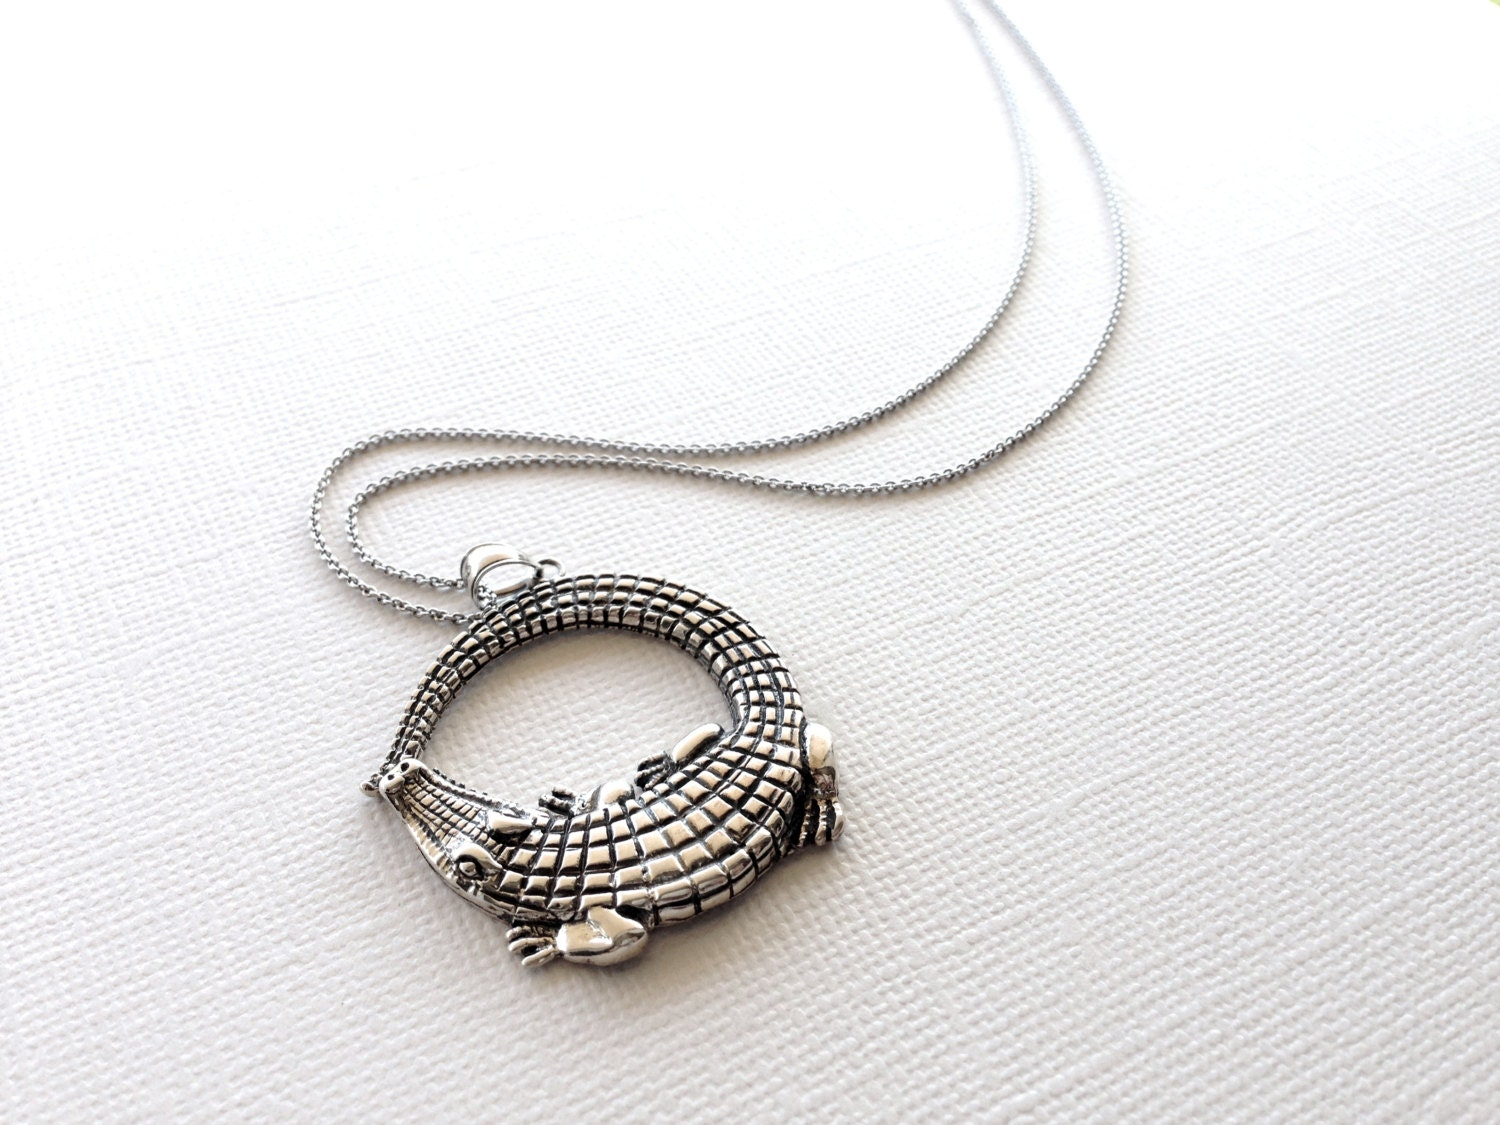 Alligator Necklace In Sterling Silver Crocodile Jewelry